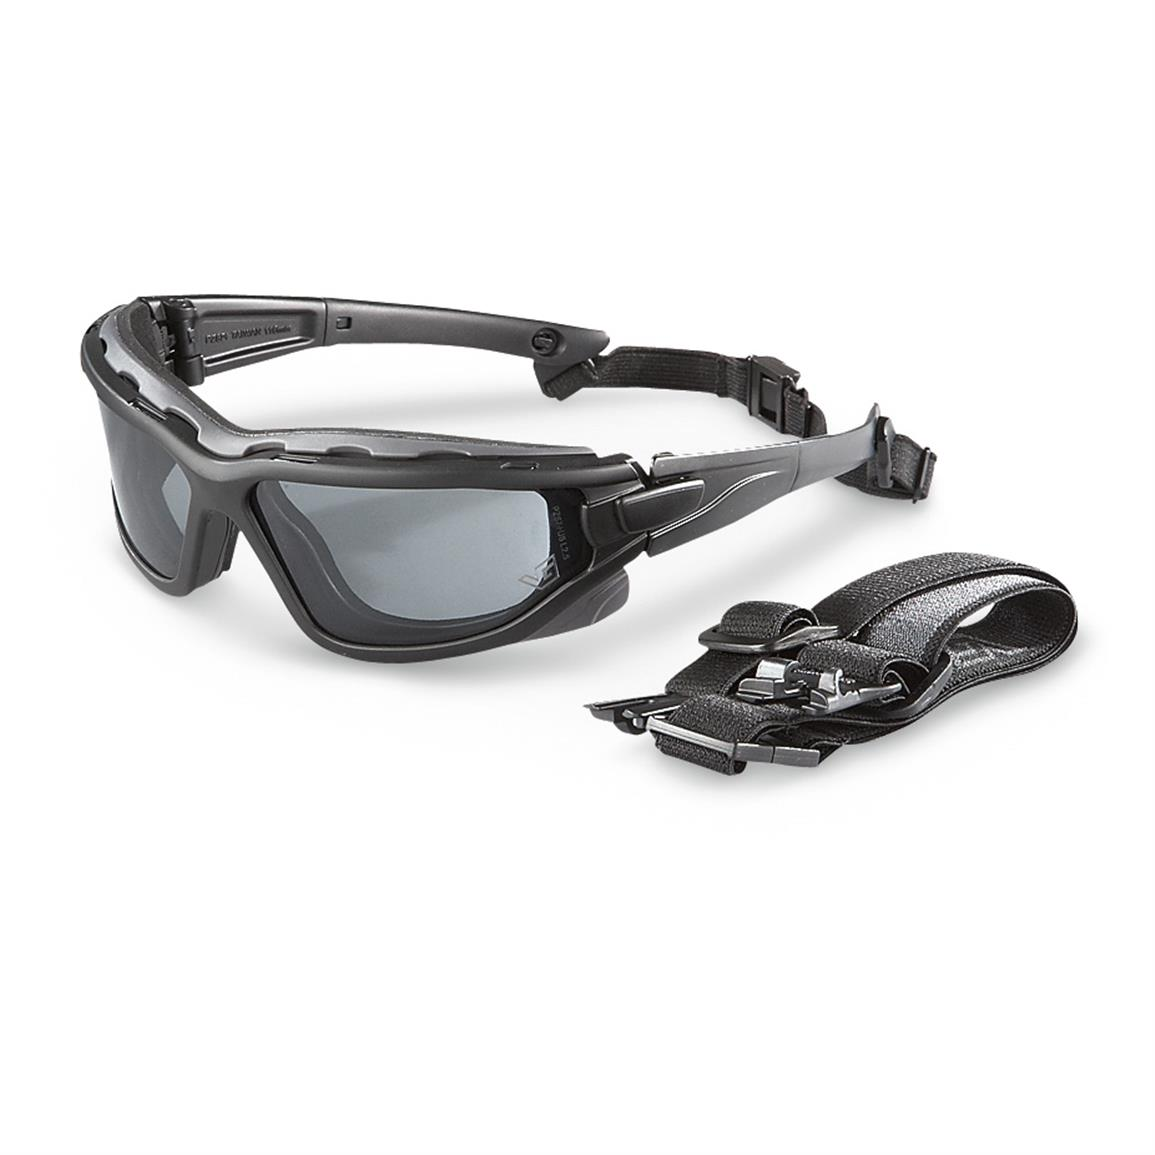 venturegear tactical wolfhound goggles 633383